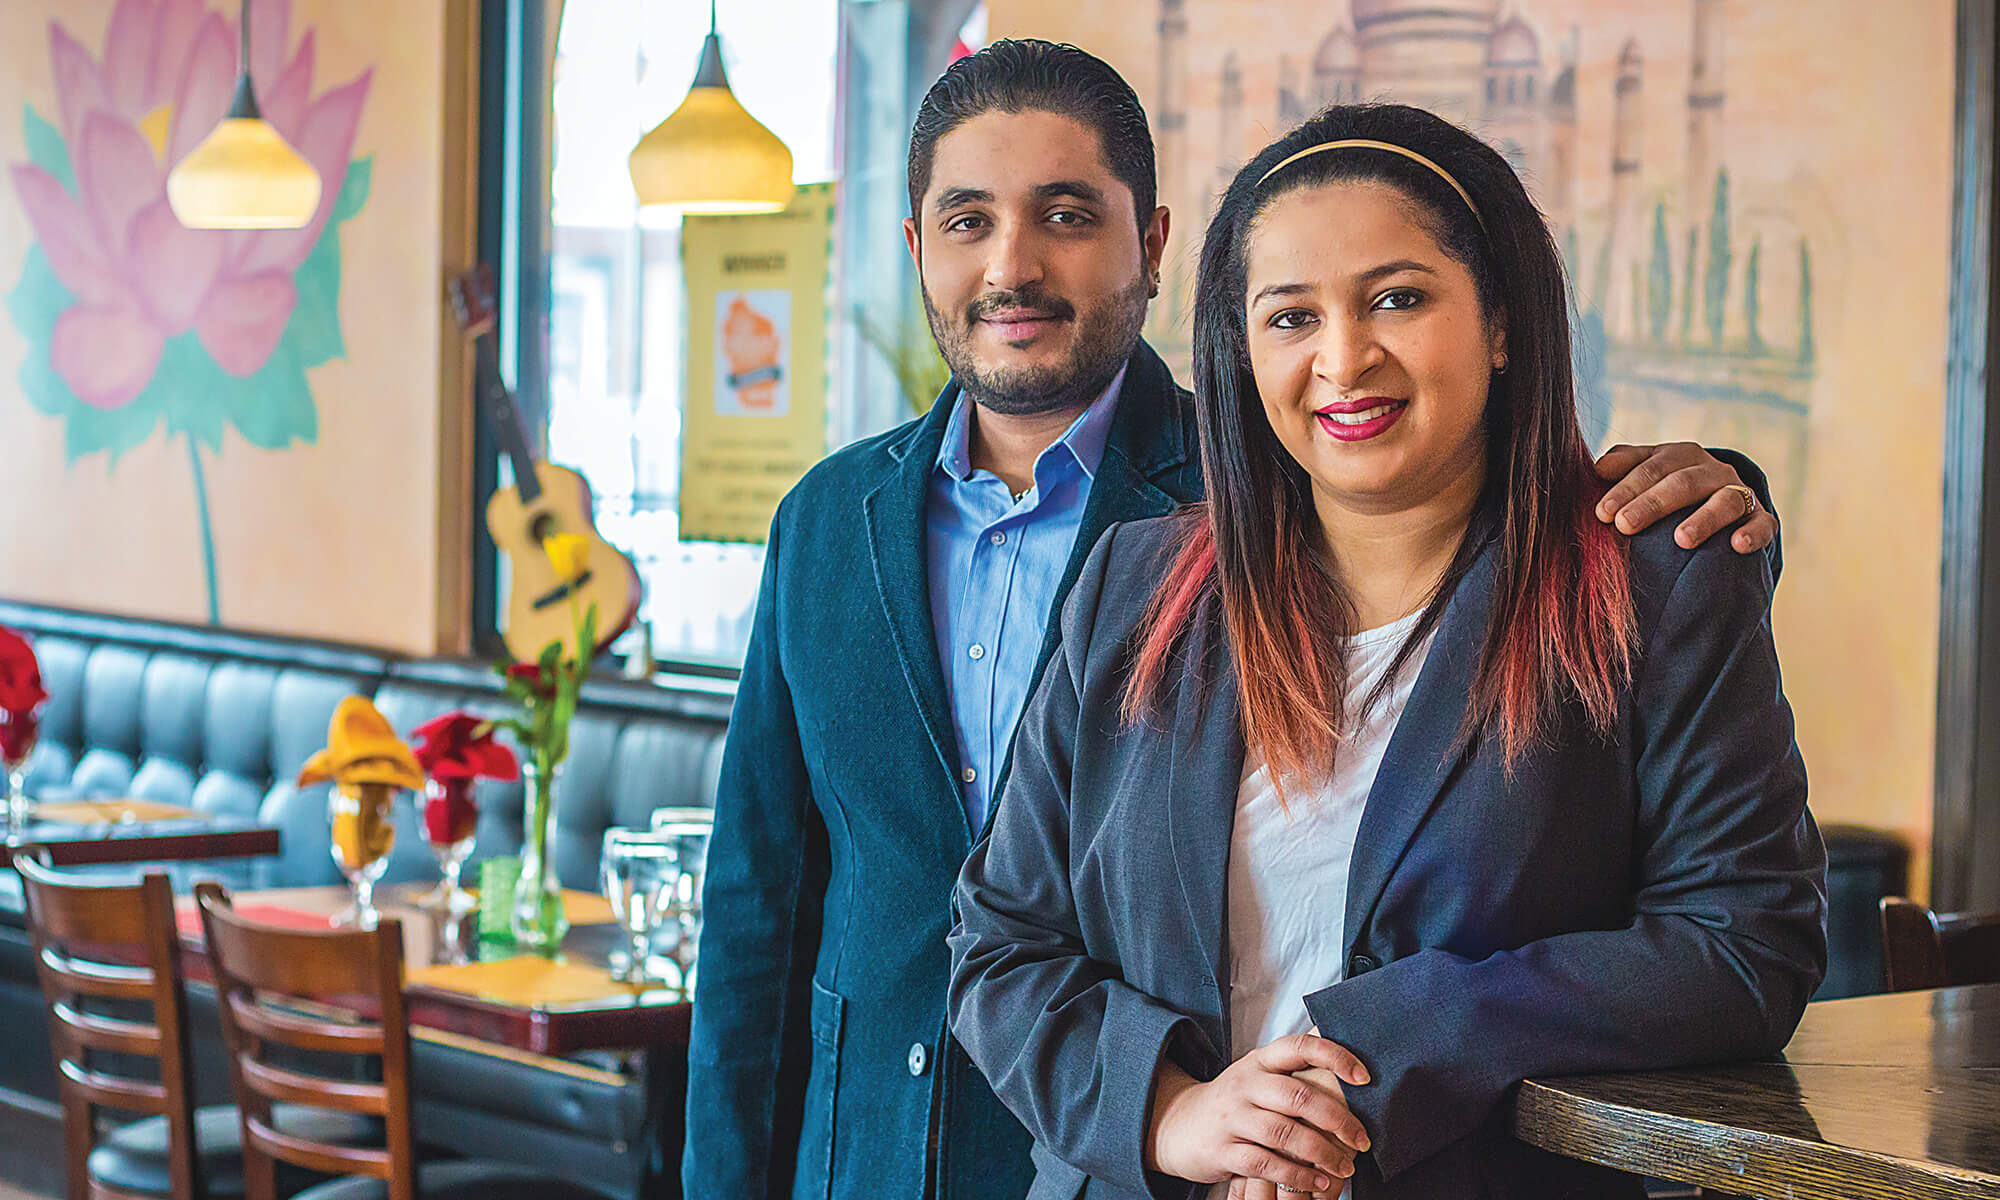 Manisha Dhillon (left) and Shitanshu Saini have earned their place at Café India. Restaurant owner Rakesh Rehan says he plans to have the 2017 CUW graduates on board for the long haul.